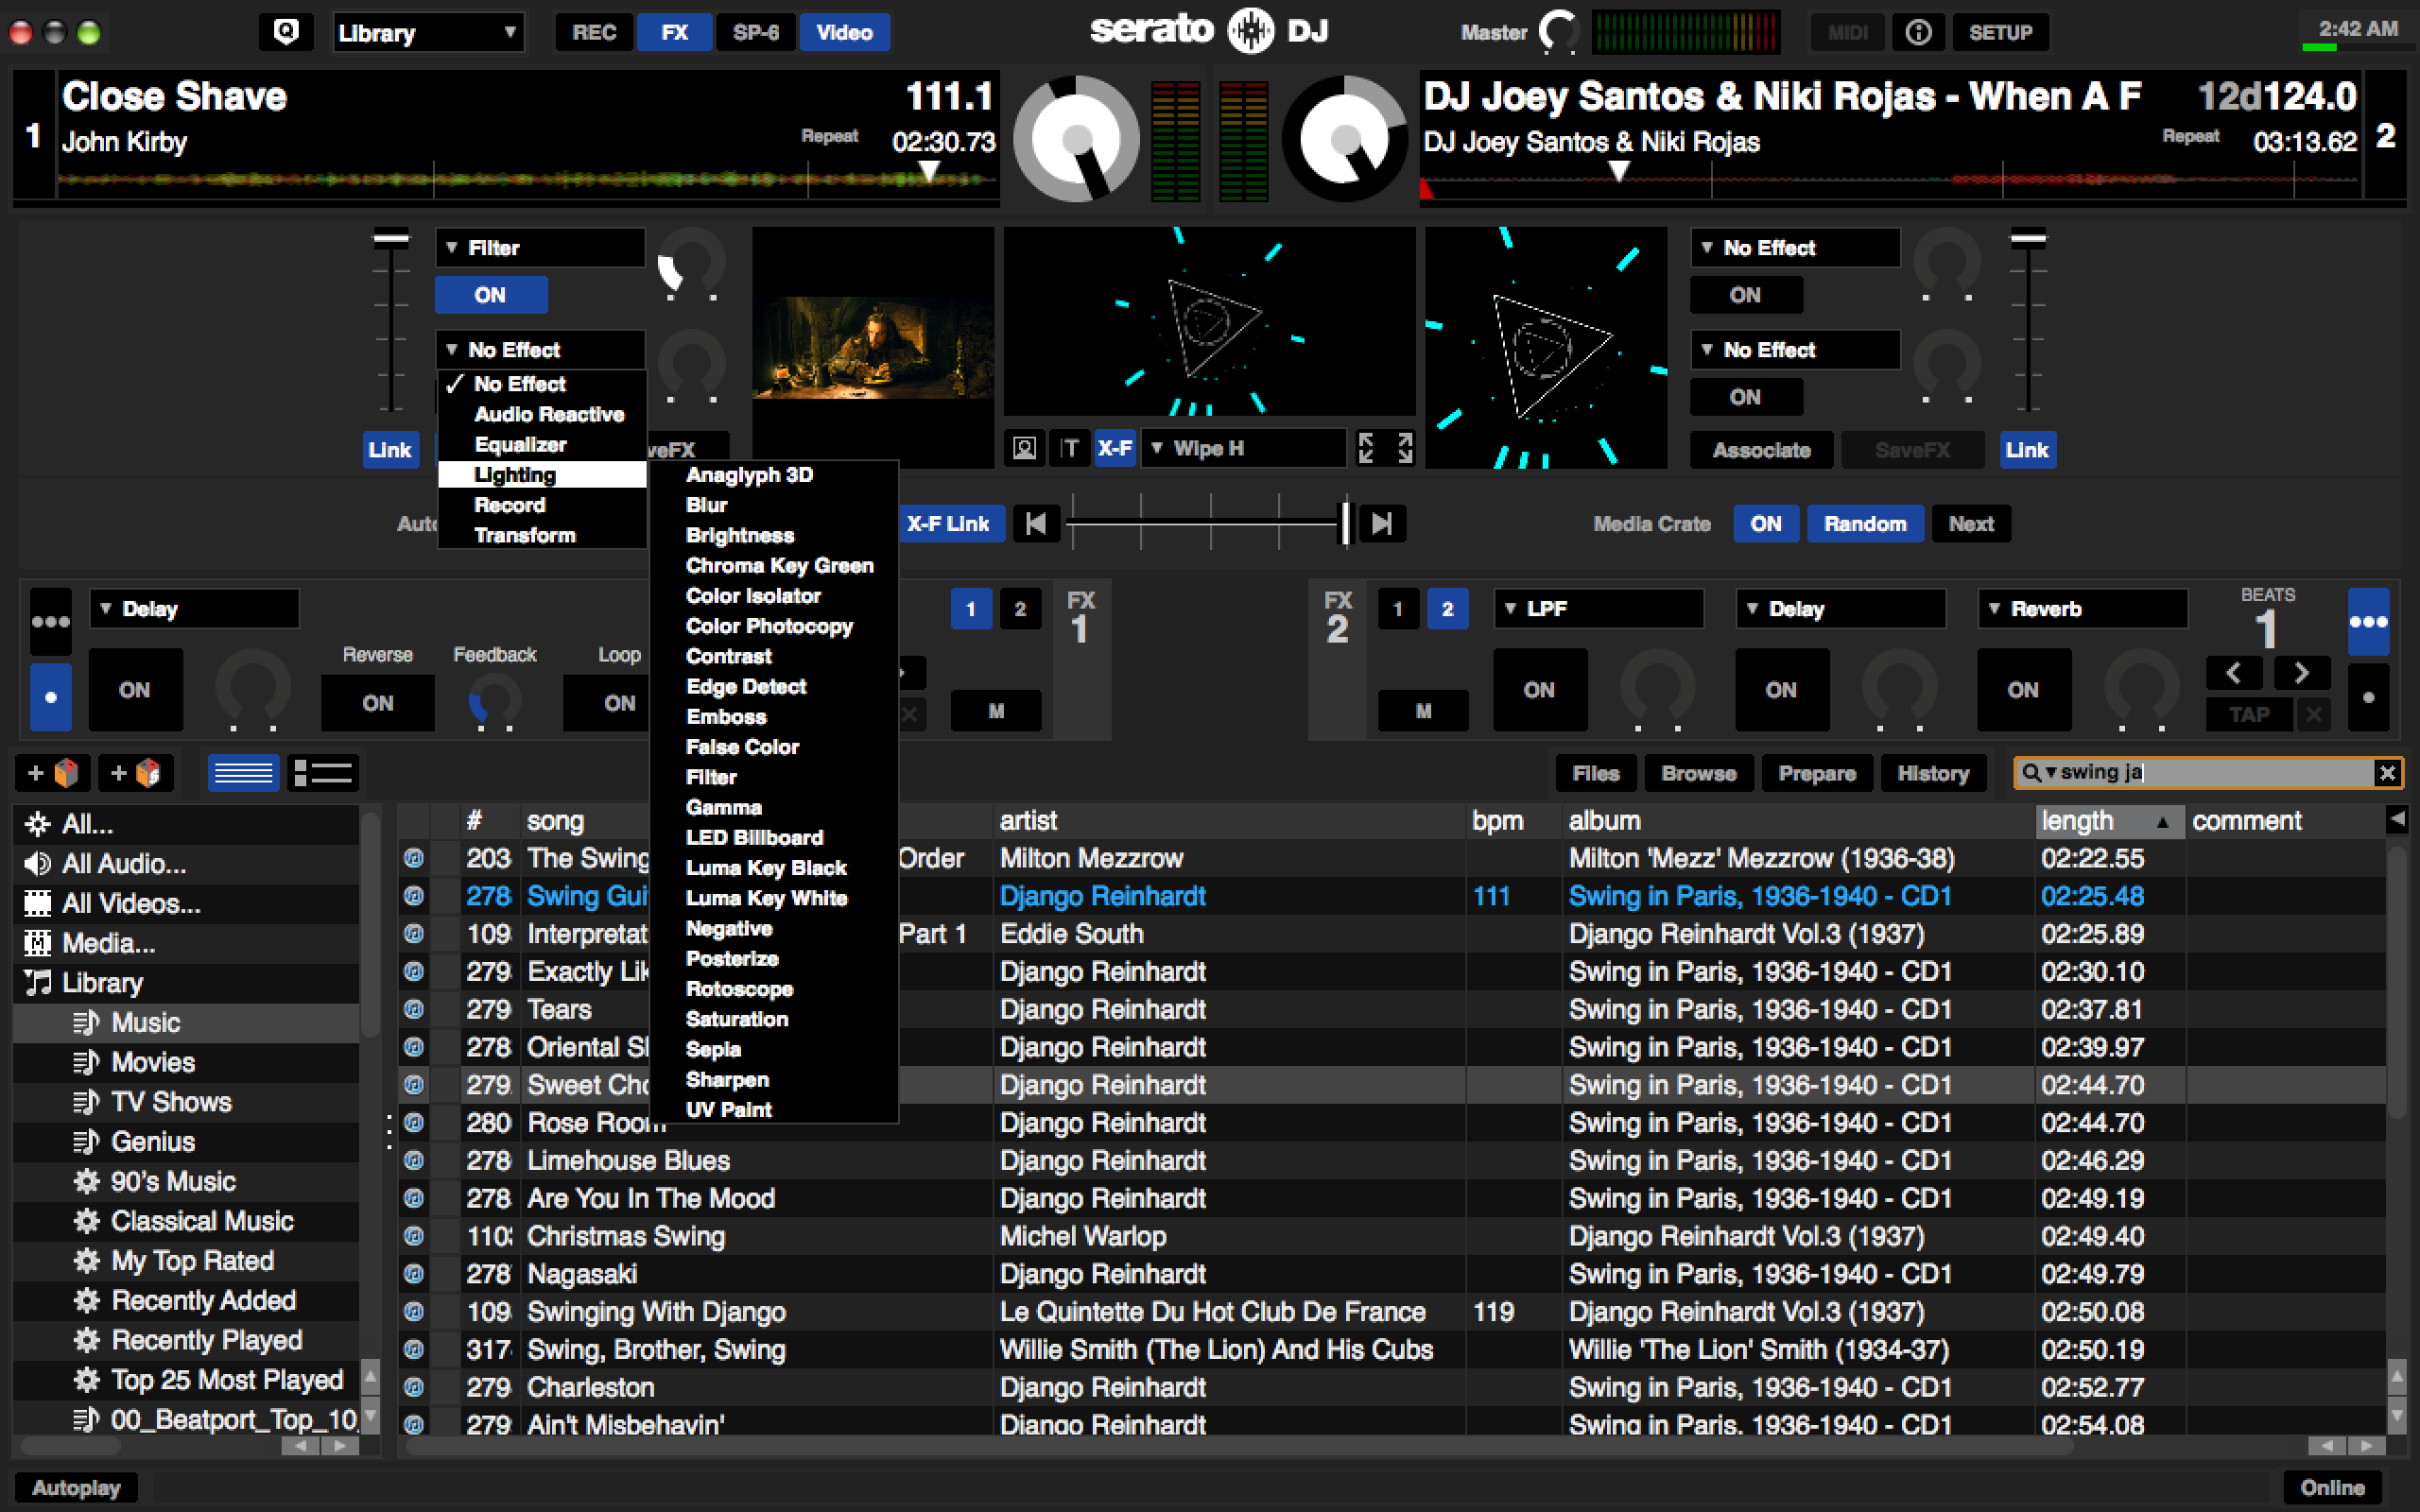 There are a ton of video deck and transition effects in Serato Video, all designed to gently modify or mangle your visuals as you see fit!